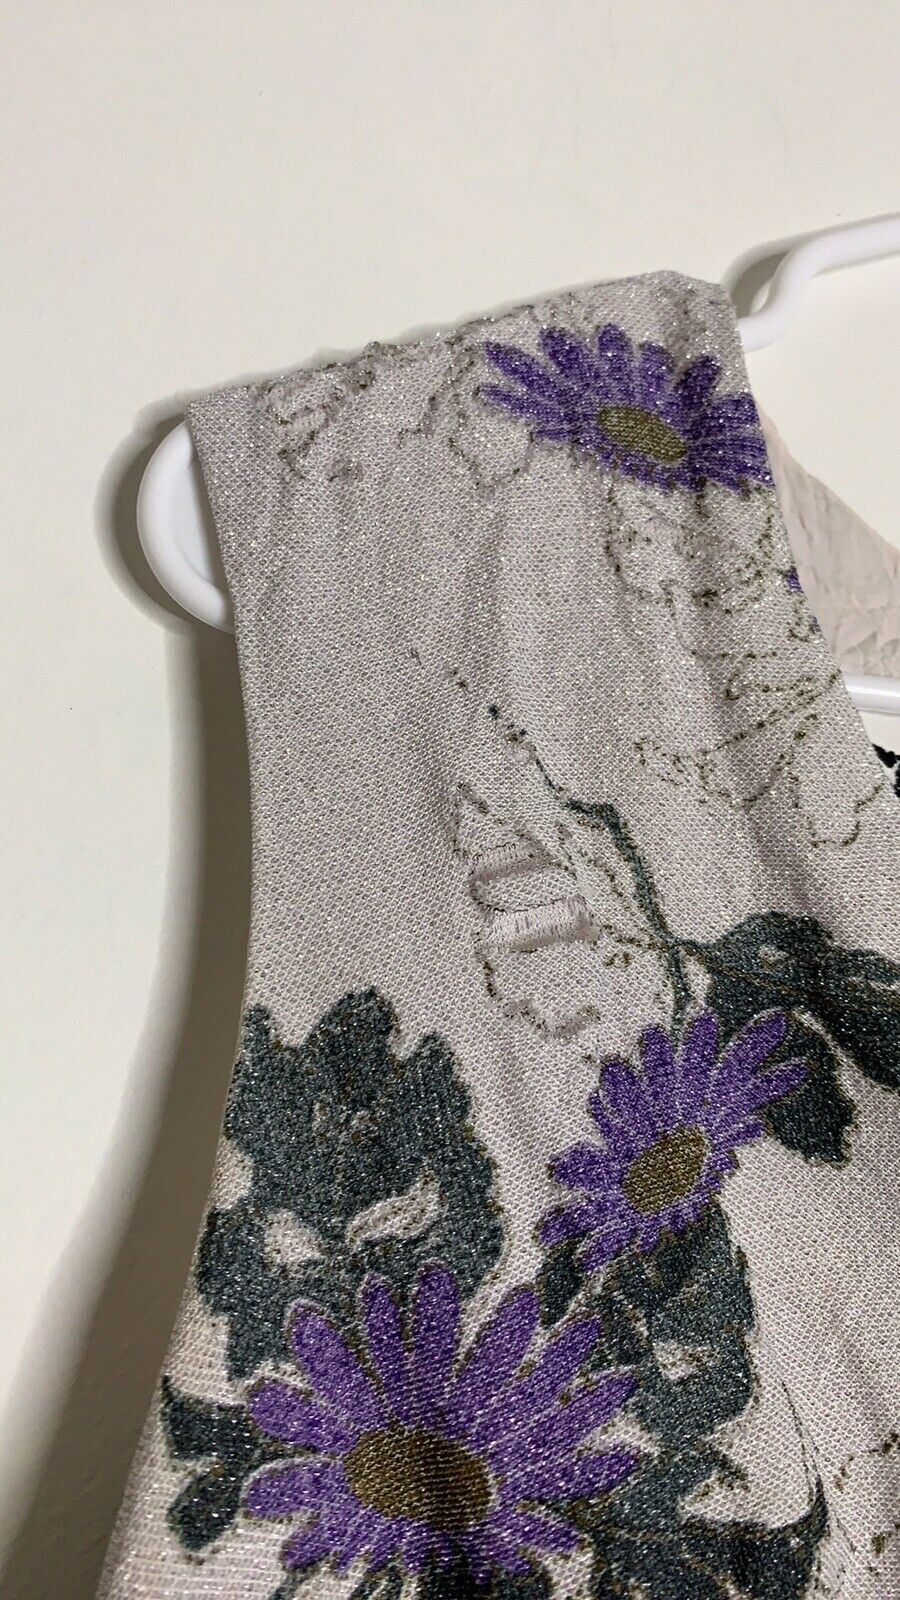 Vintage Alfred Shaheen Daisy Dress - image 11